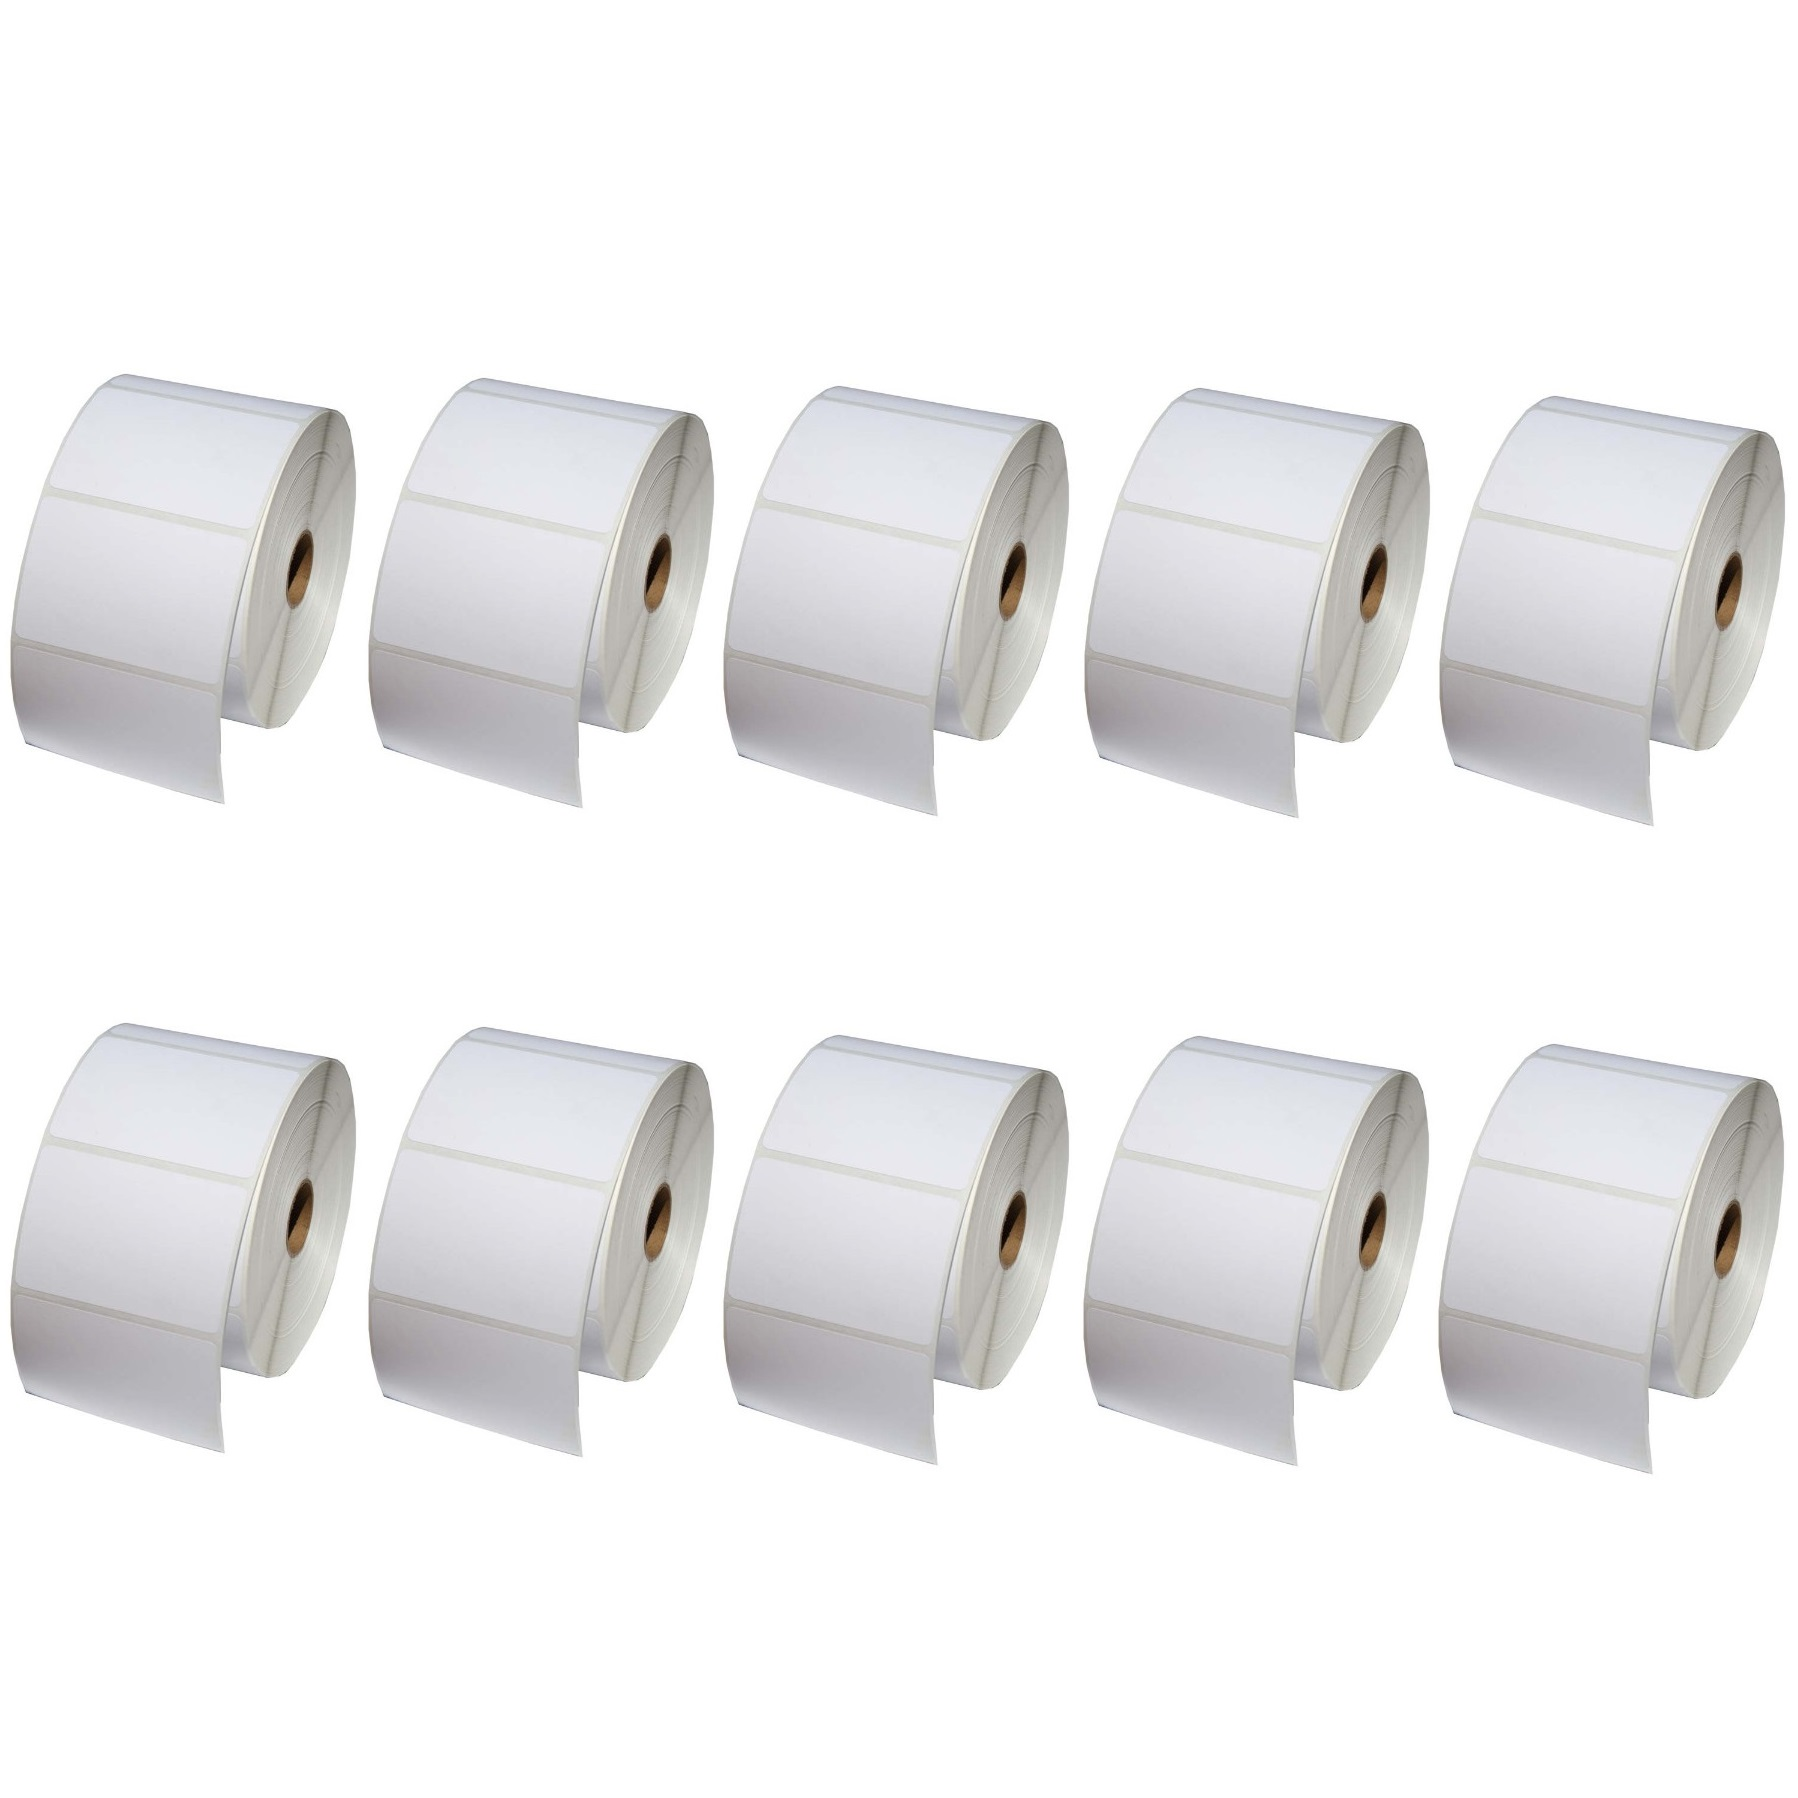 100x50 Direct Thermal Labels - 10 Rolls